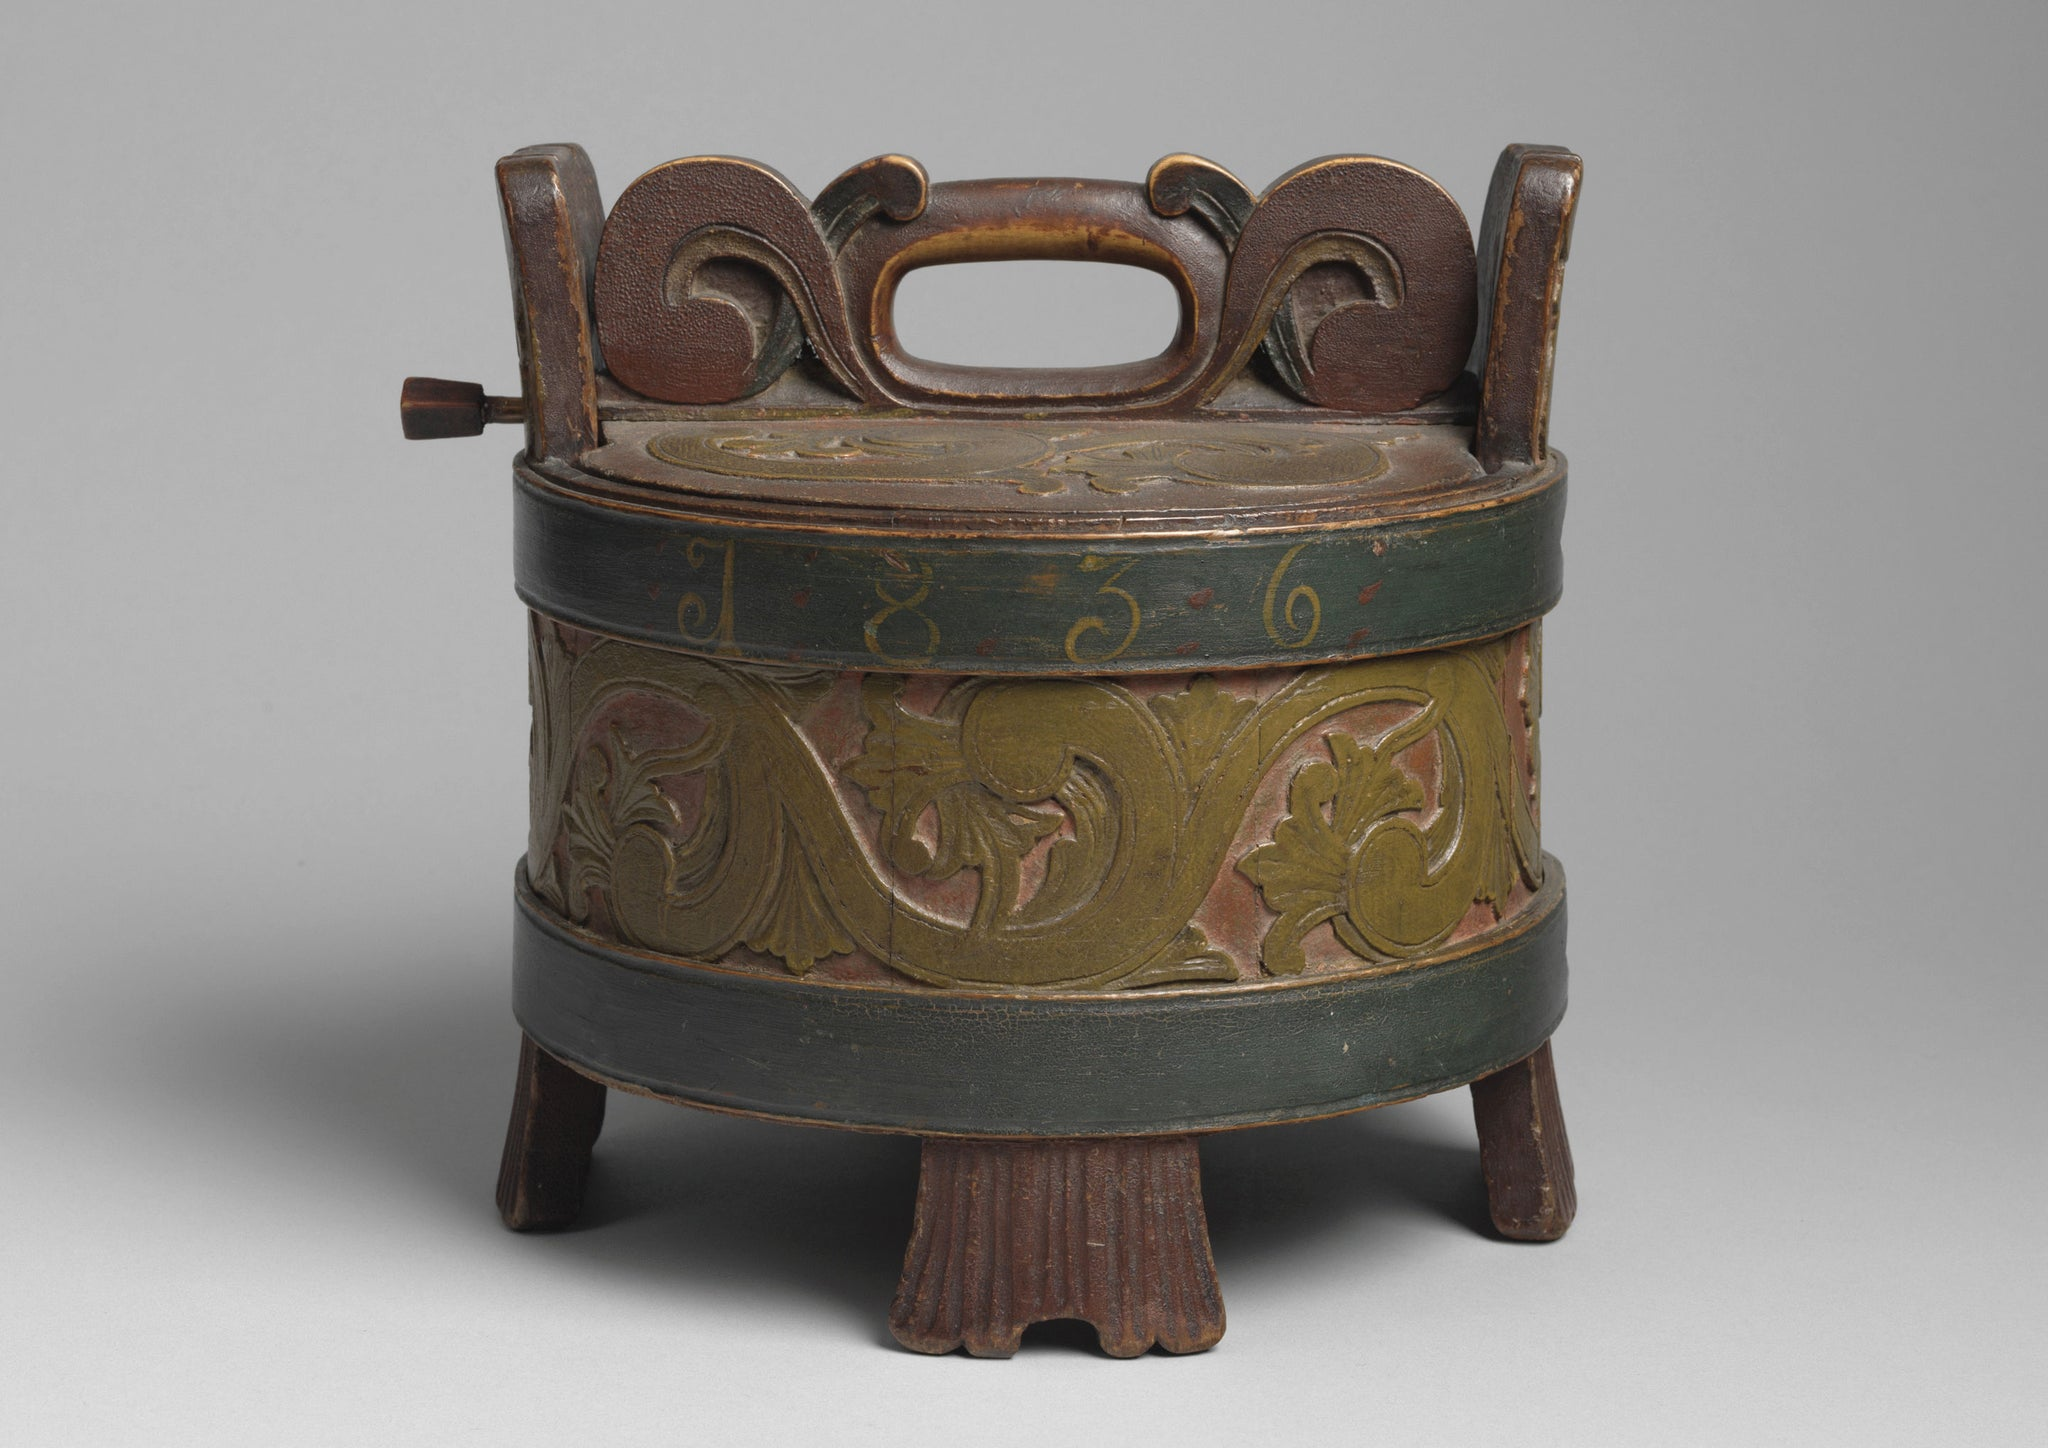 Lidded Love Token Dry Storage Box